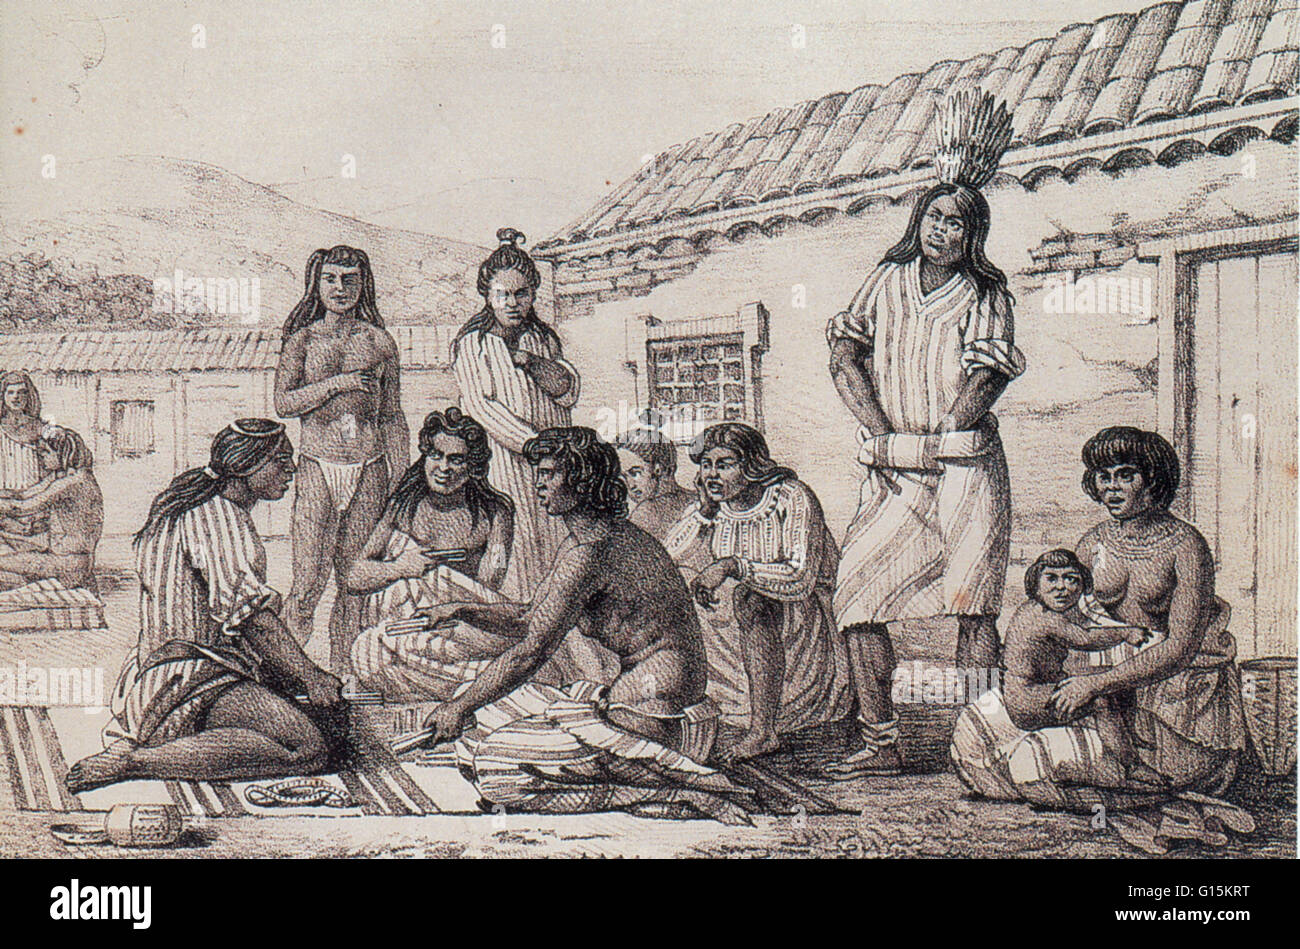 Illustration by the Russian artist Louis Choris depicting a group of California 'Mission Indians,' Native - Stock Image